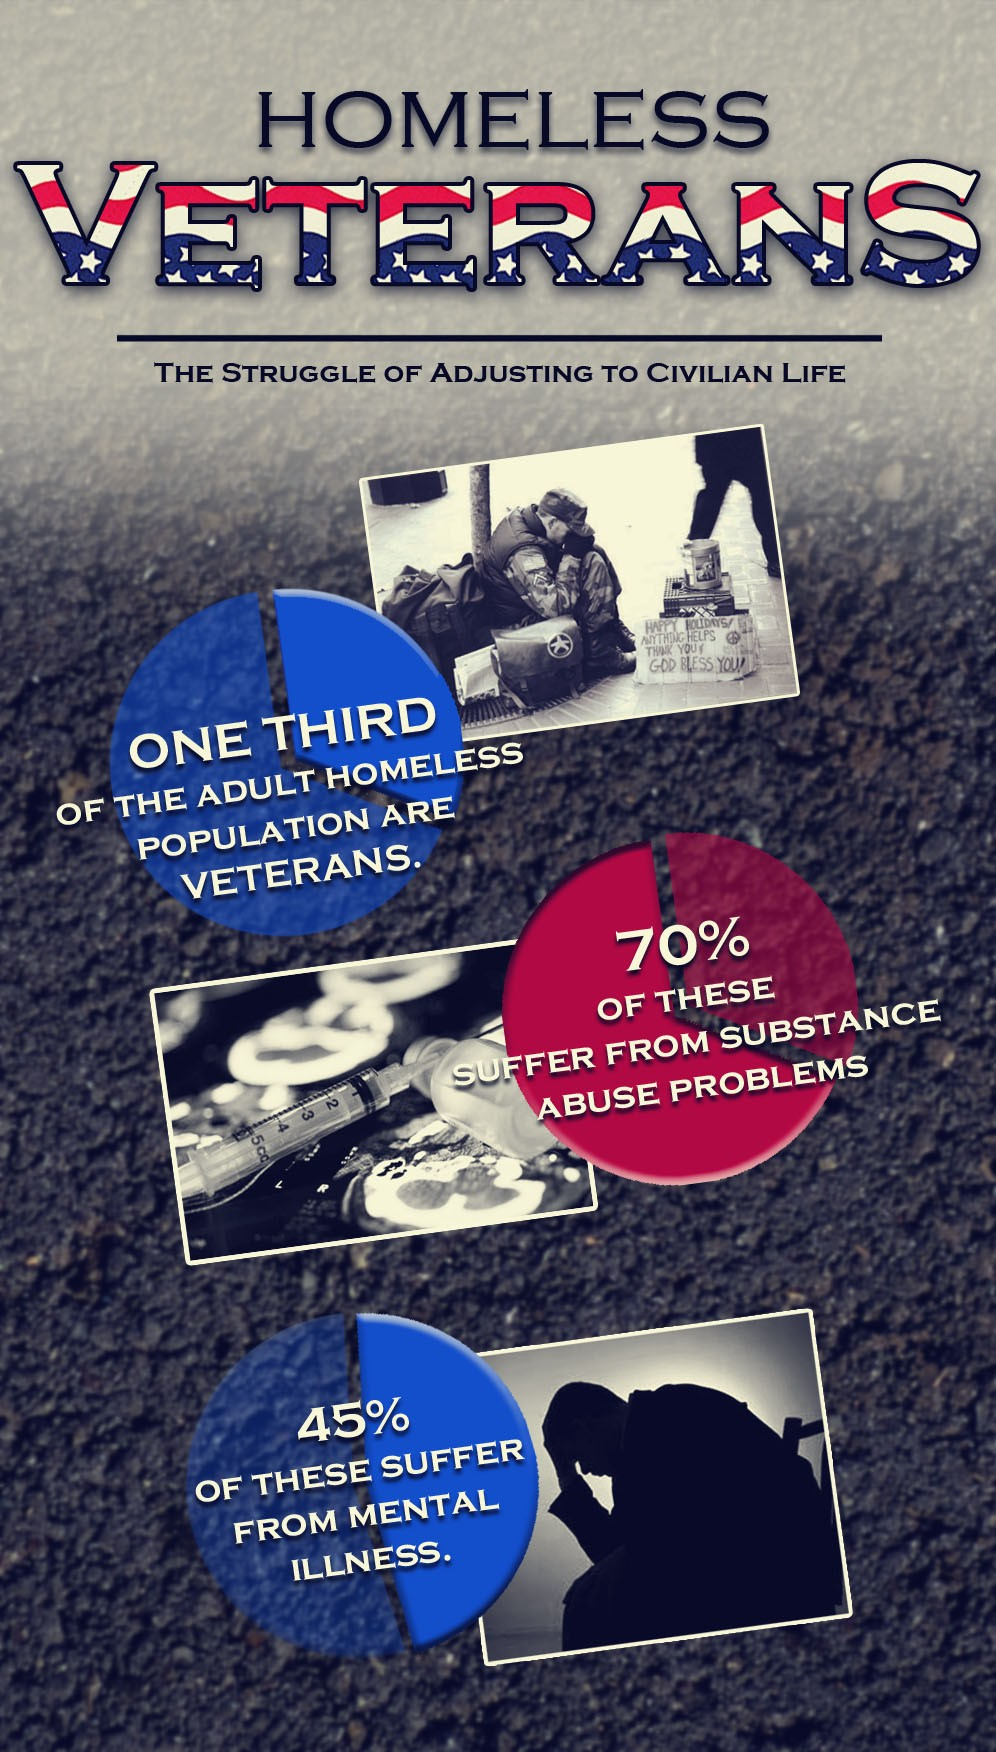 Mental Problems of Homeless Veterans